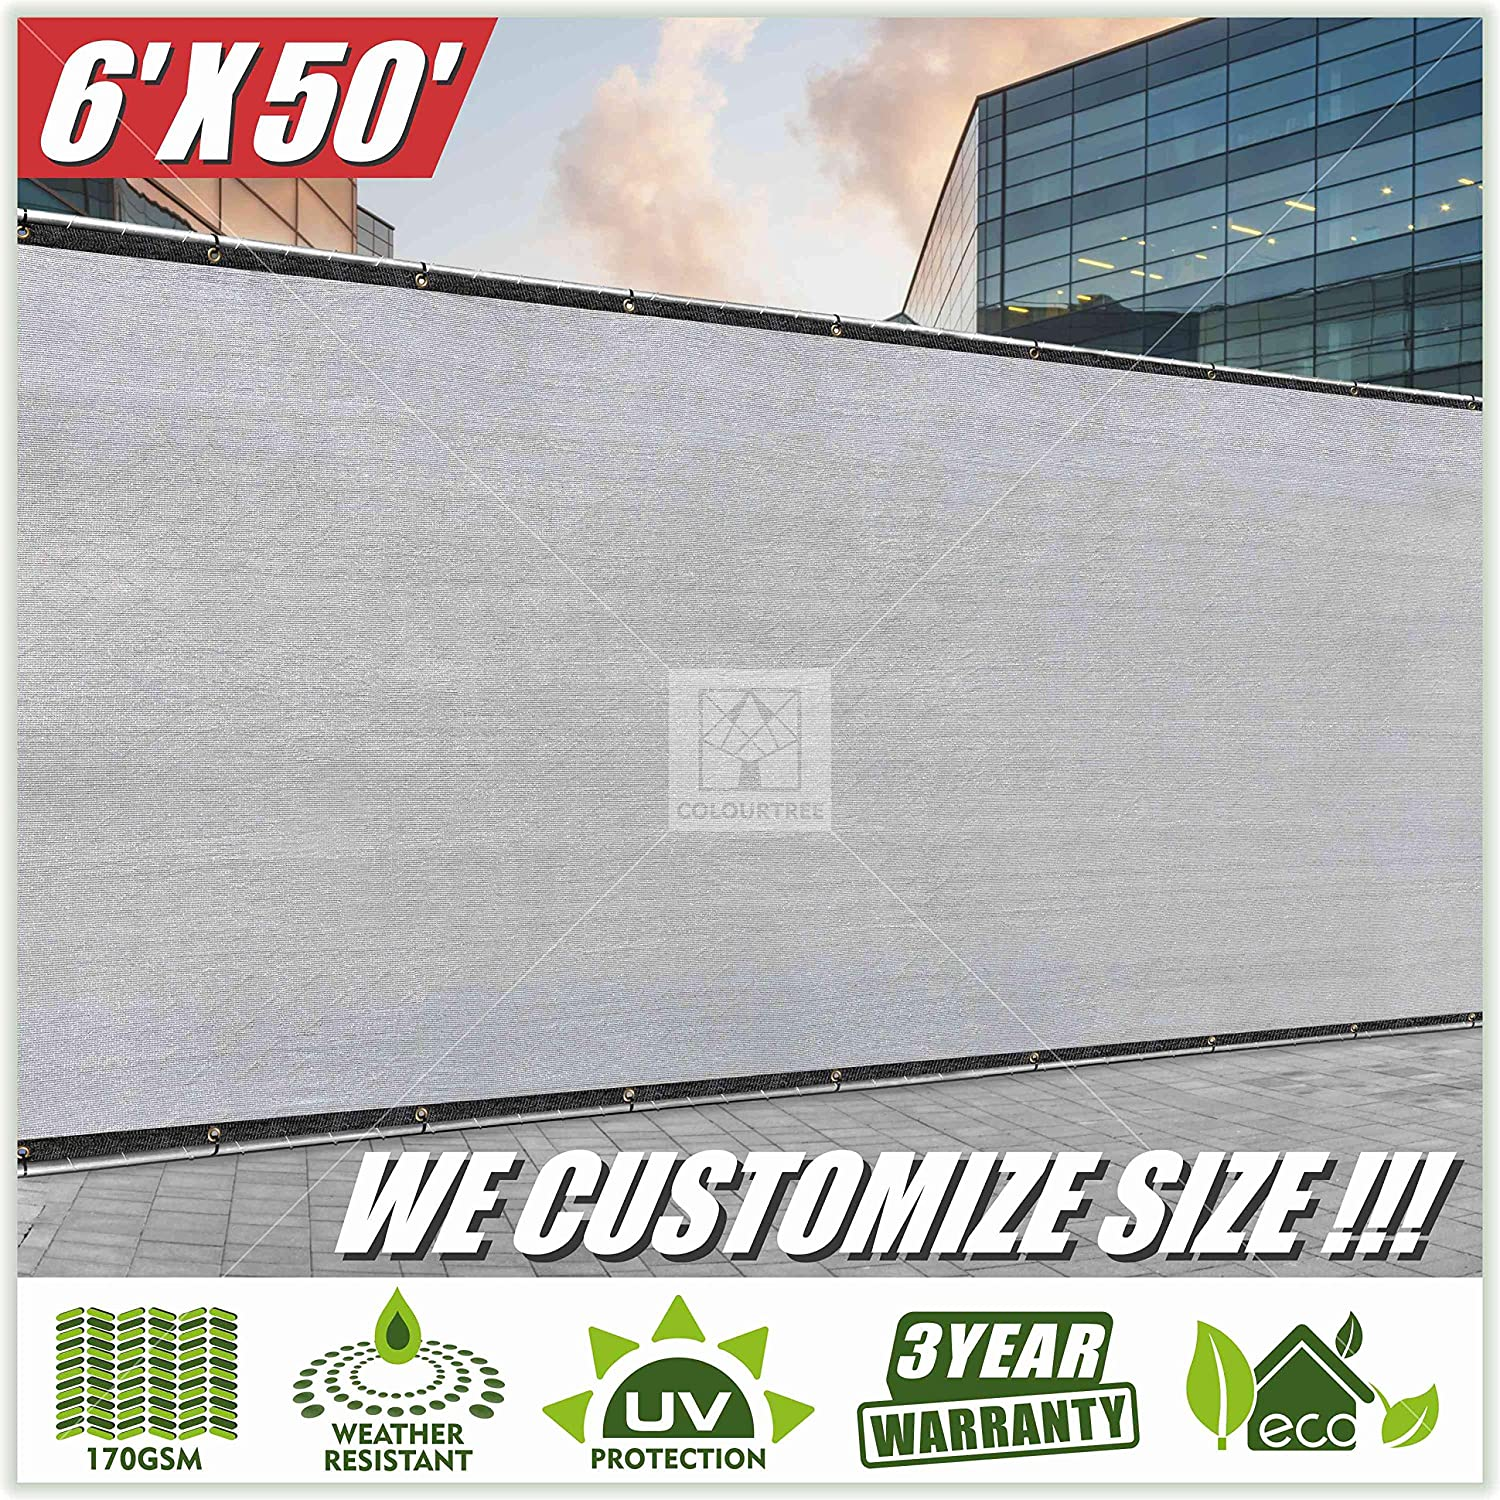 ColourTree 6' x 50' Grey Fence Privacy Screen Windscreen, Commercial Grade 170 GSM Heavy Duty, We Make Custom Size